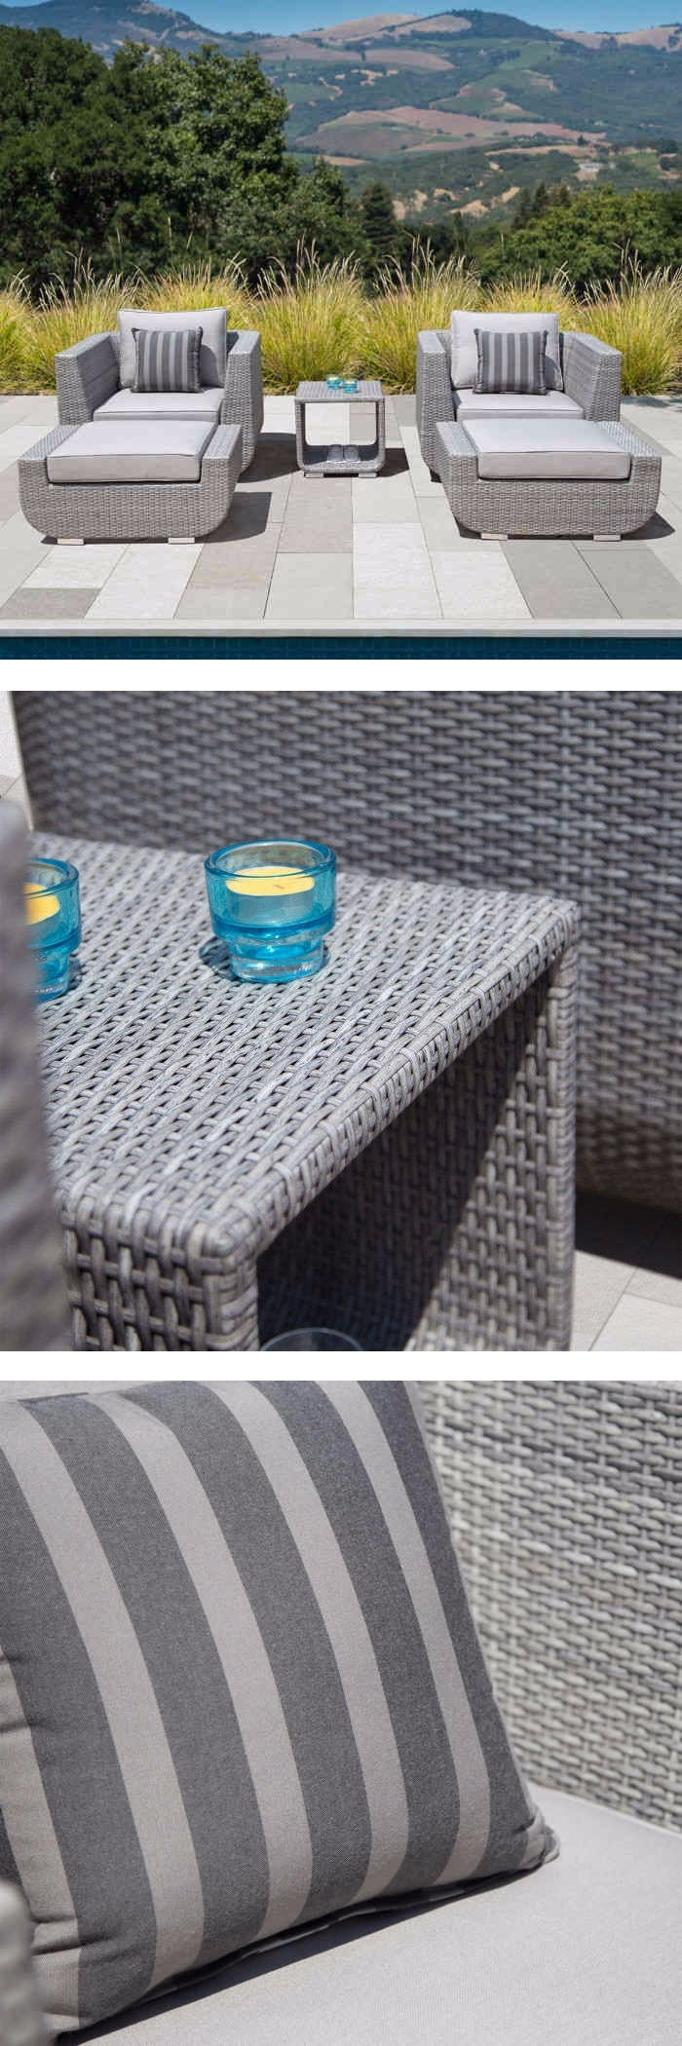 Turn your outside seating space into a backyard oasis with